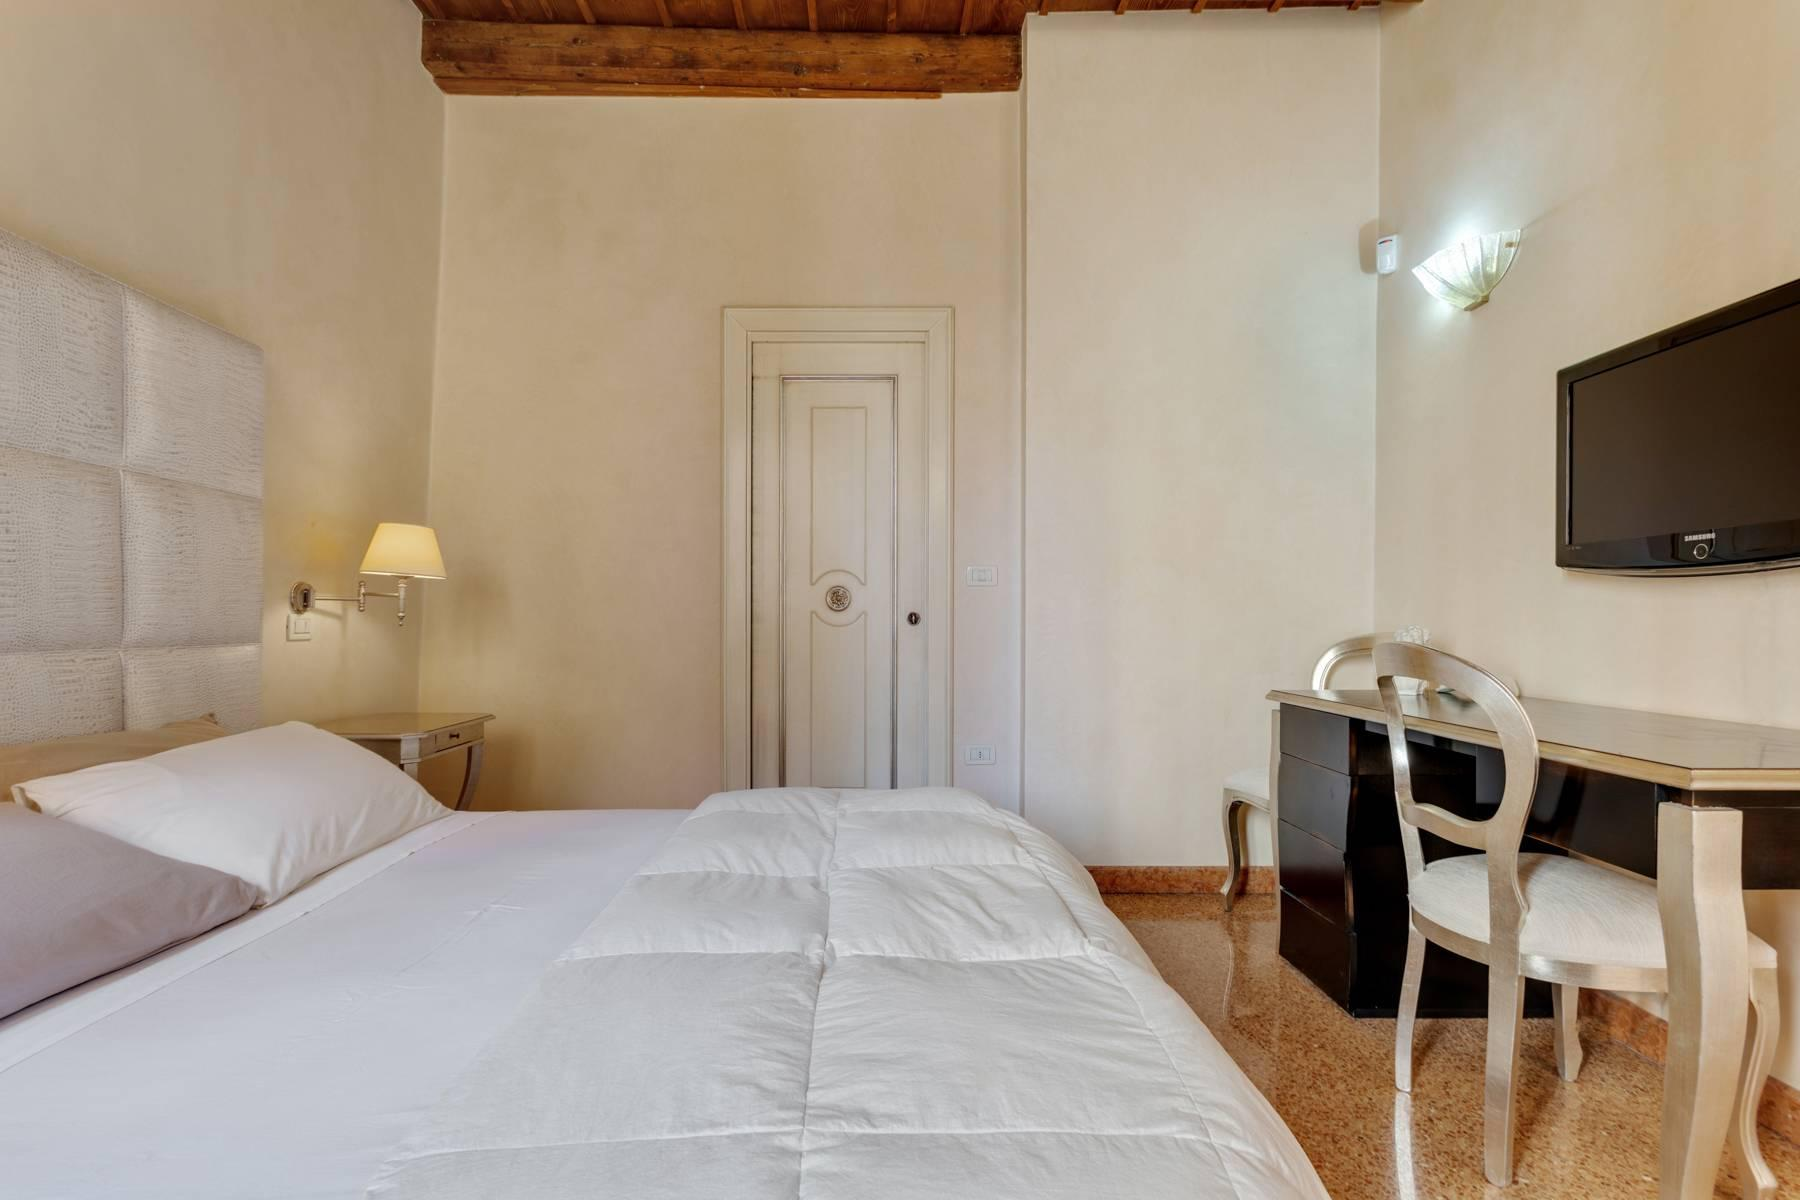 Exquisite apartment just few steps away from Piazza delle Erbe - 21